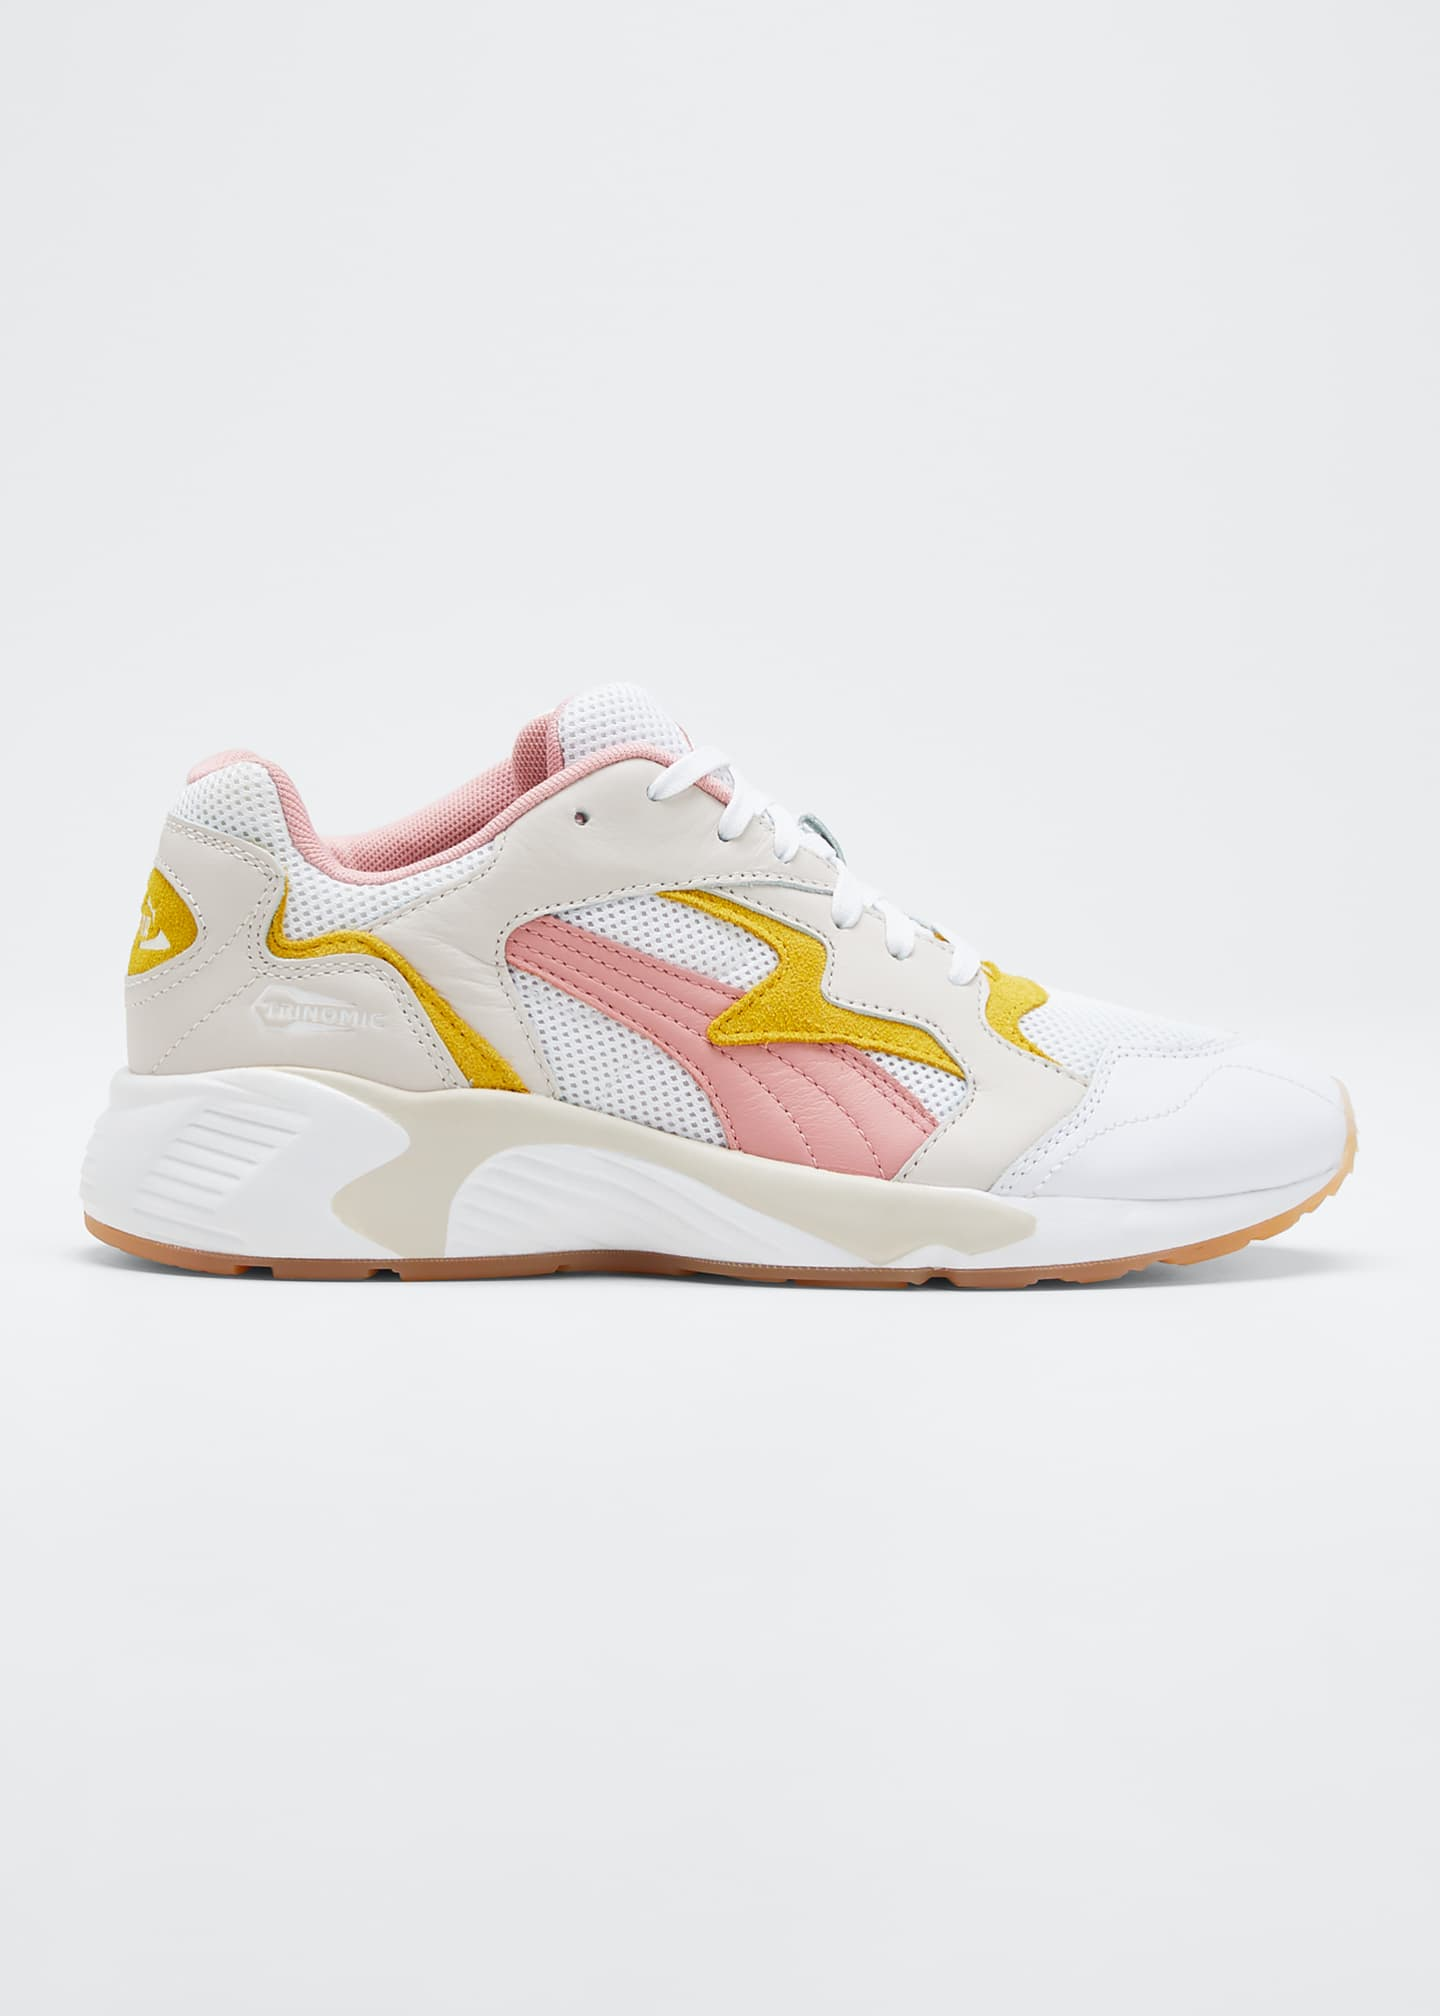 Puma Prevail Classic Women's Sneakers